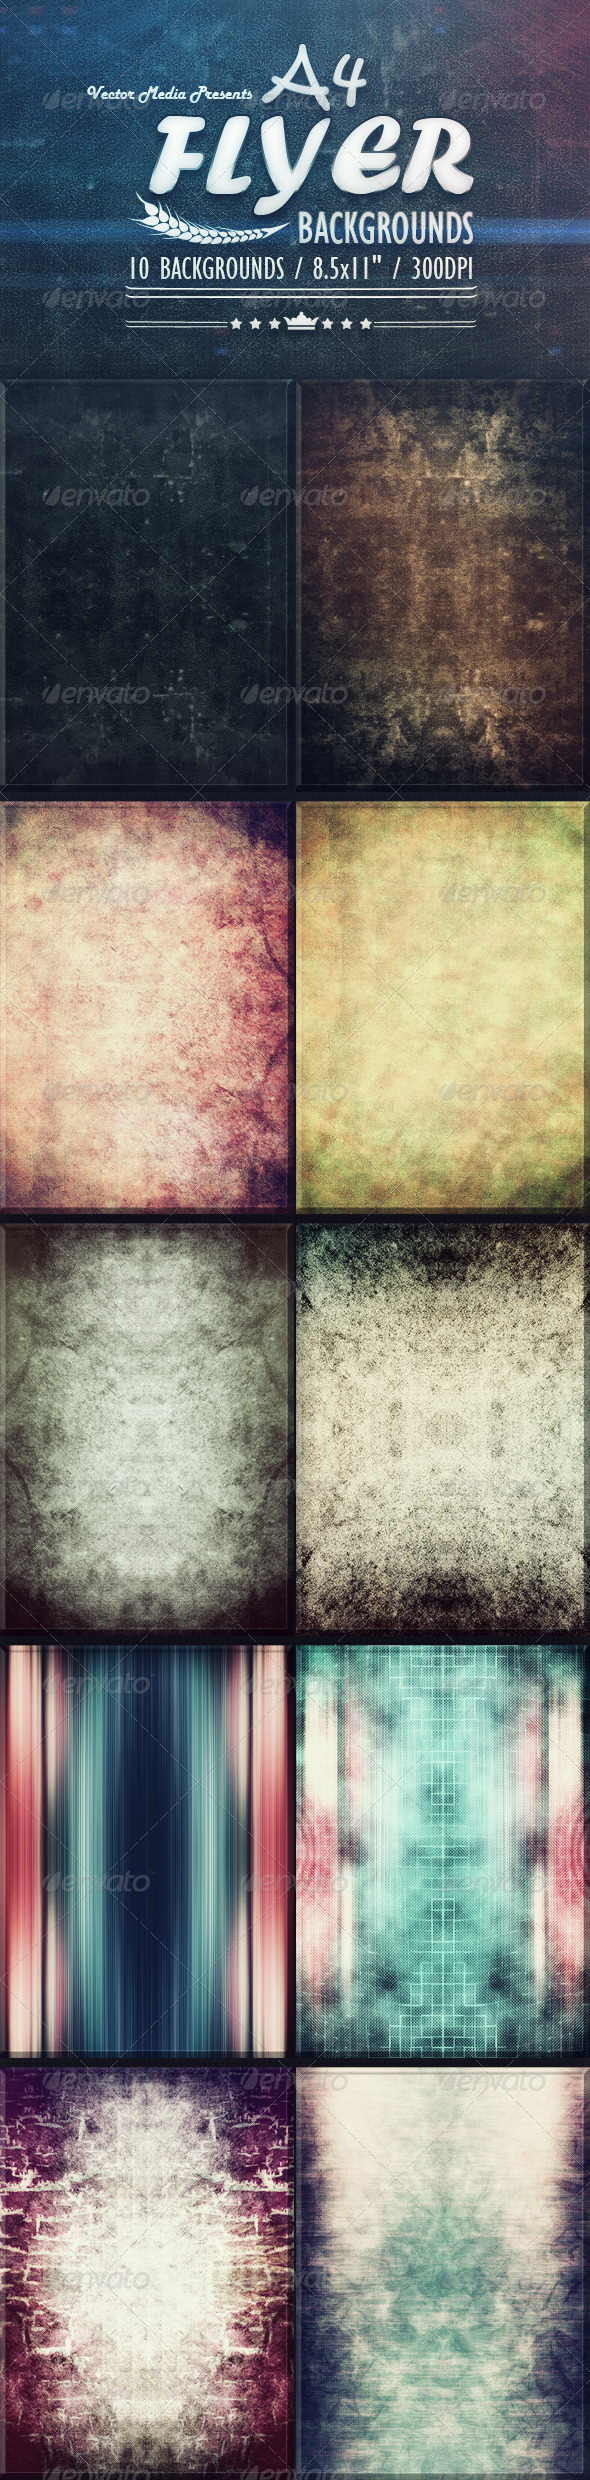 A4 - Flyer Backgrounds - Miscellaneous Backgrounds